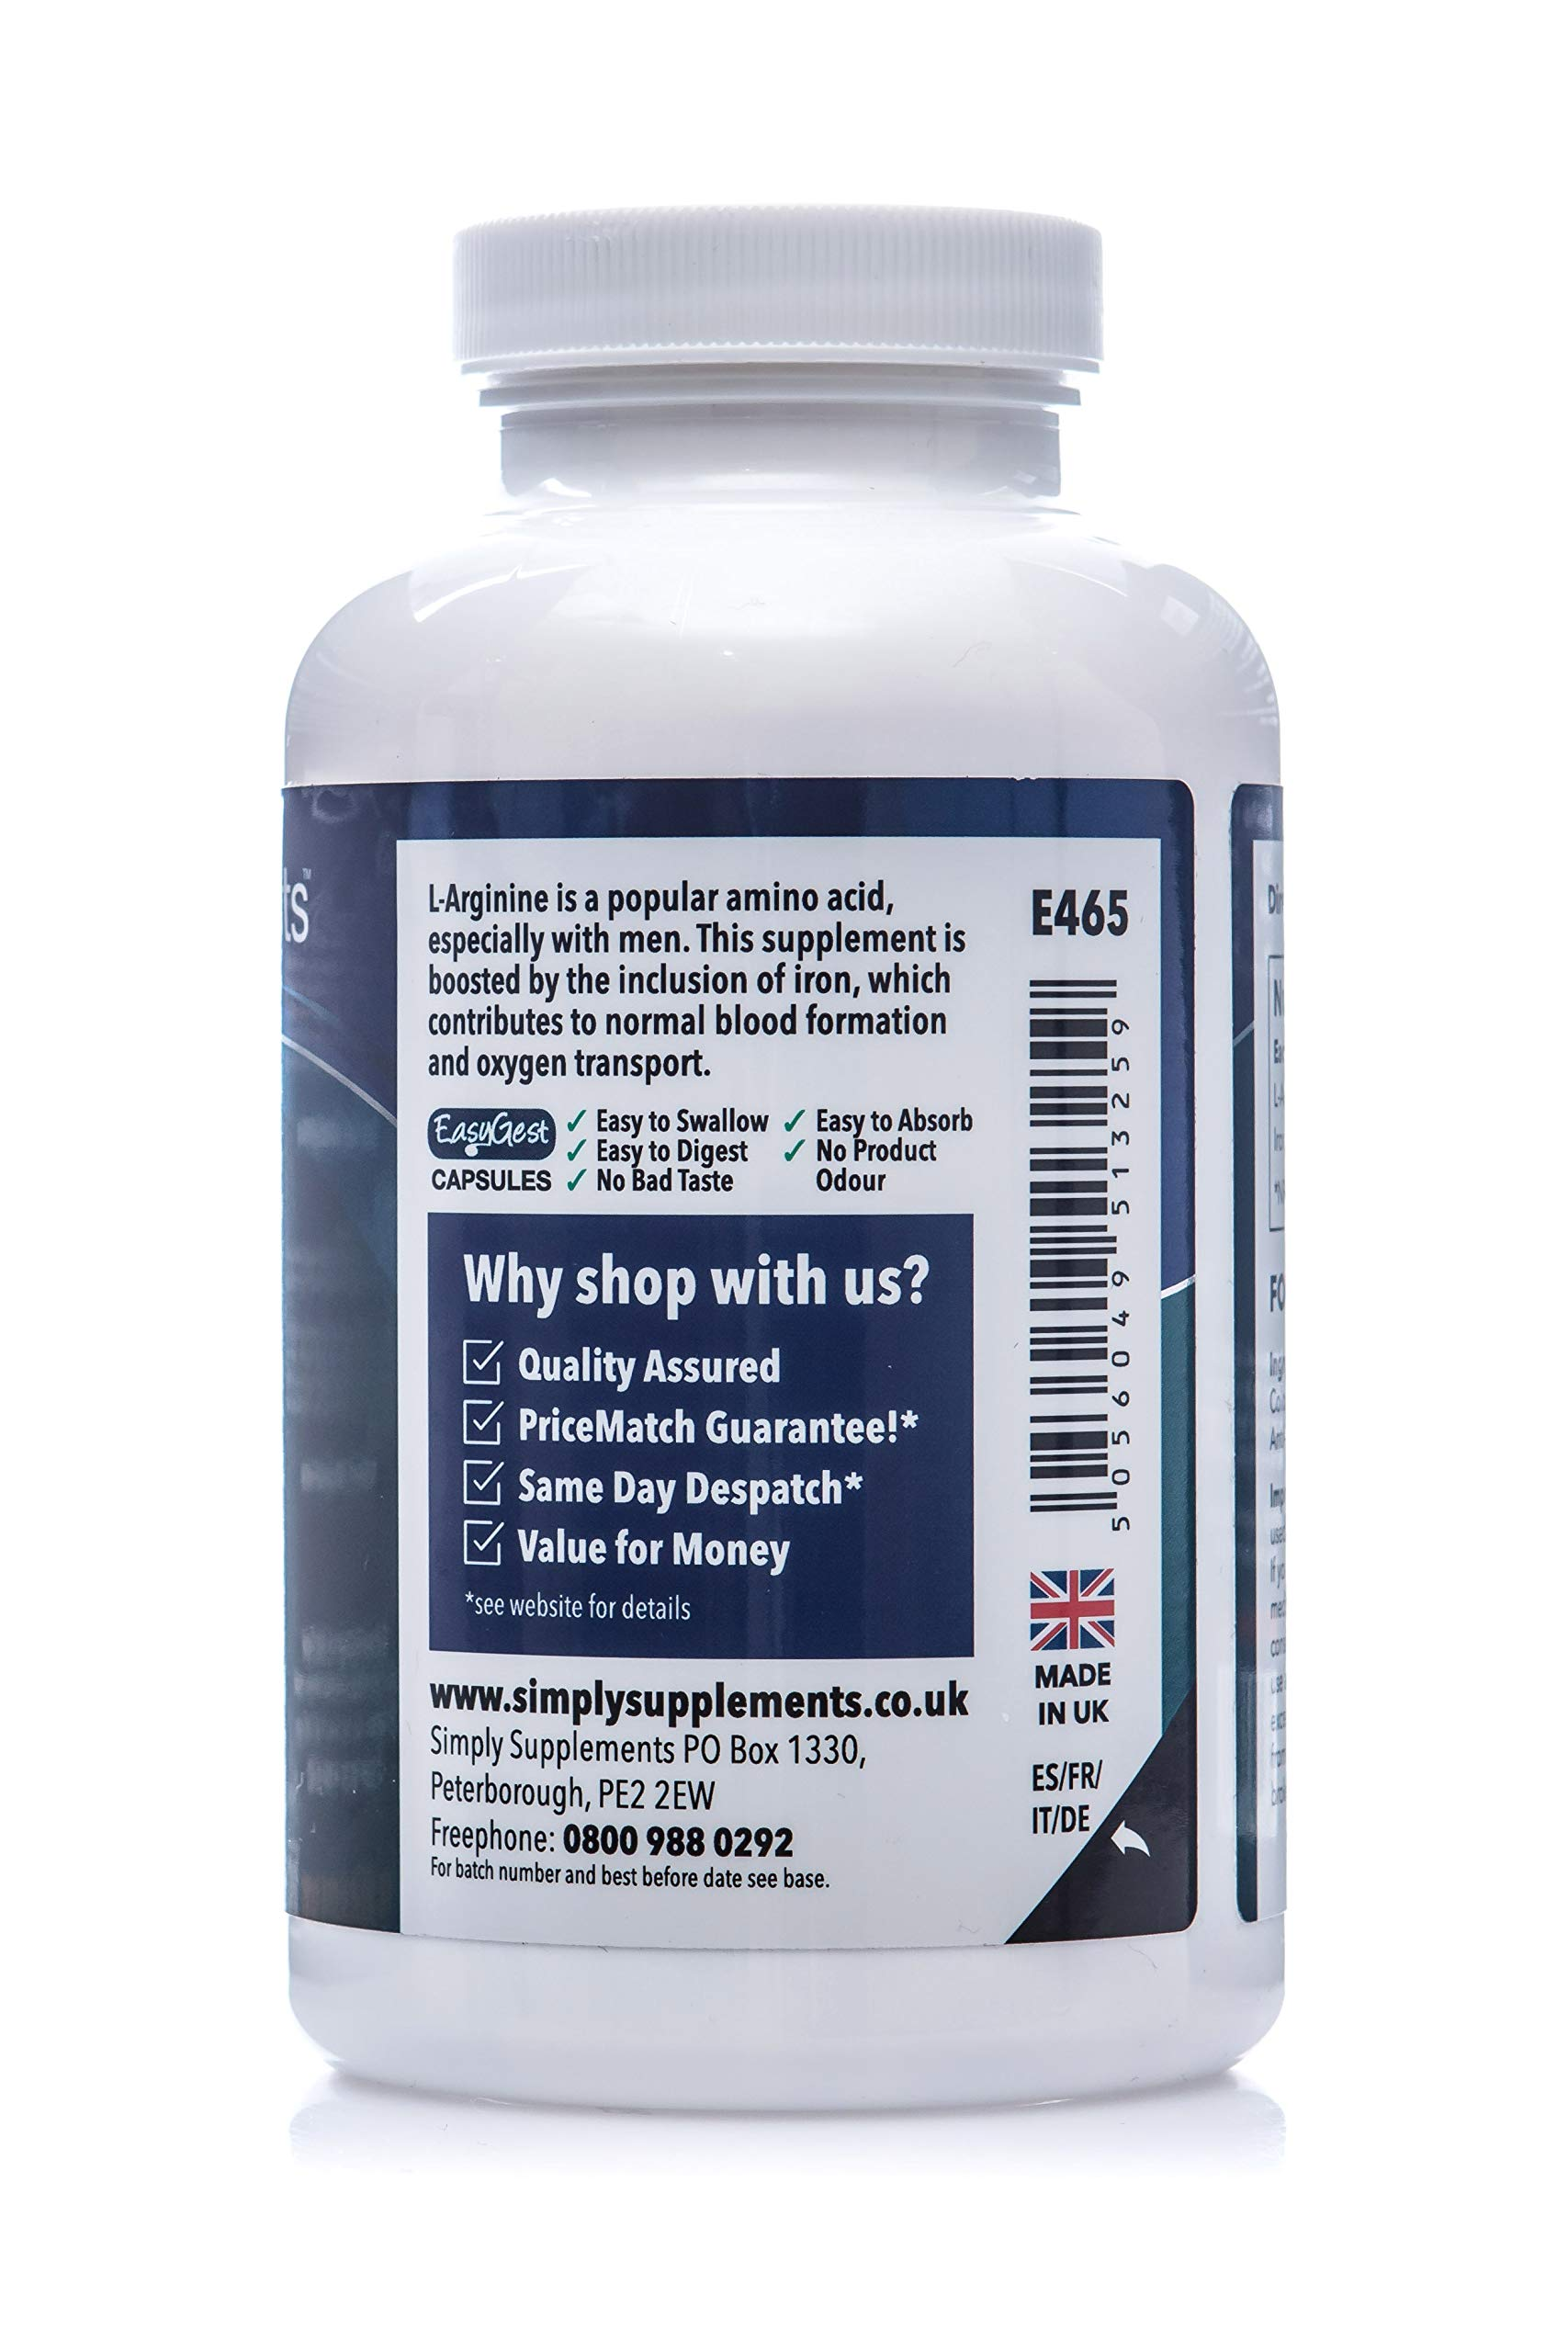 81W69NMUPNL - L Arginine 500mg Capsules | High Strength Supplement Includes Iron to Reduce Tiredness & Fatigue | 240 Capsules = 80 Days Supply | Manufactured in The UK